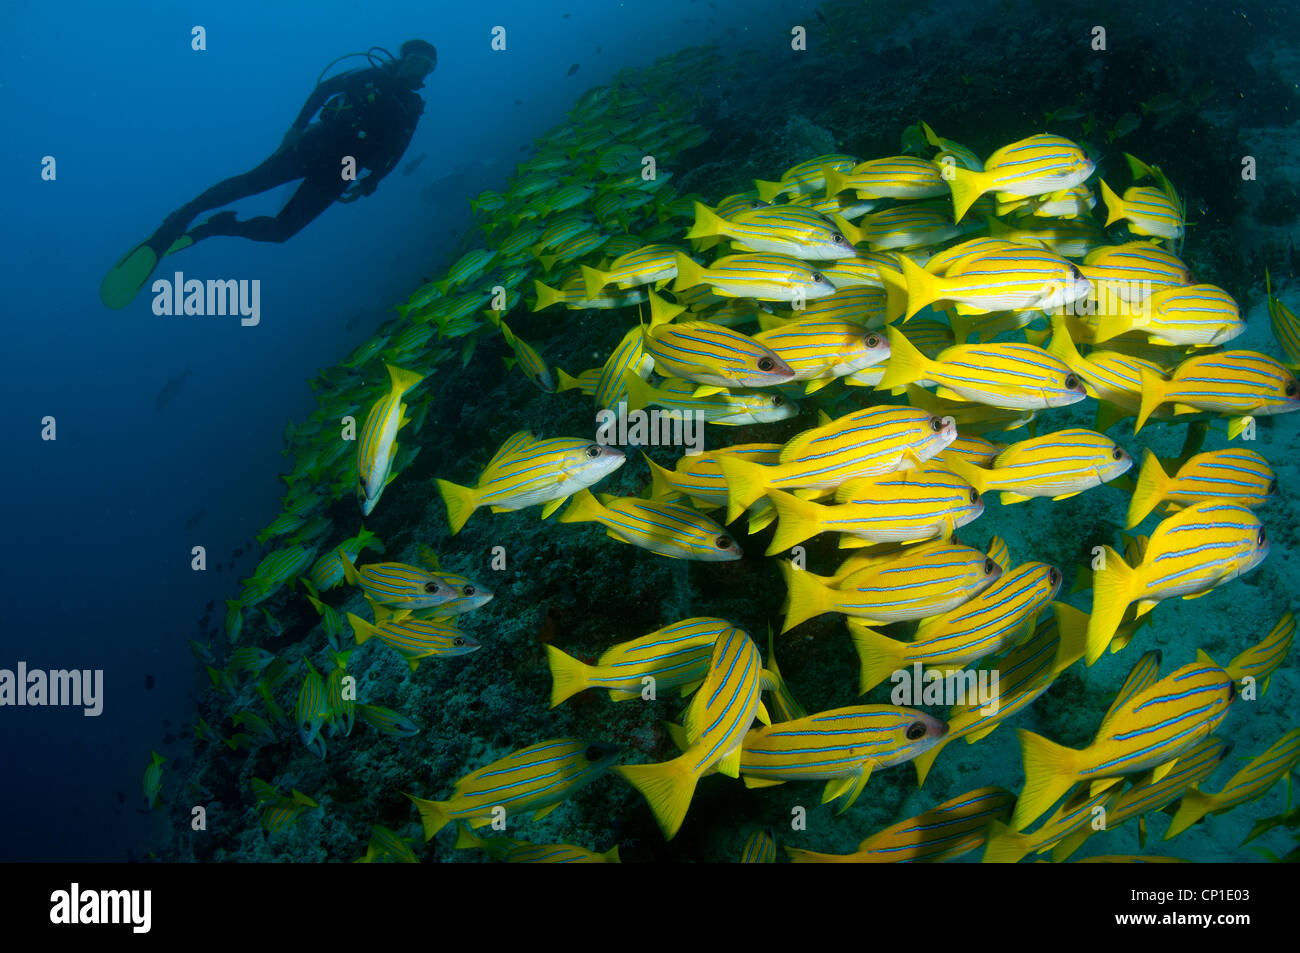 Diver amongst school of yellow snapper (Lutjanus argentinventris) on South Ari Atol, Maldives - Stock Image